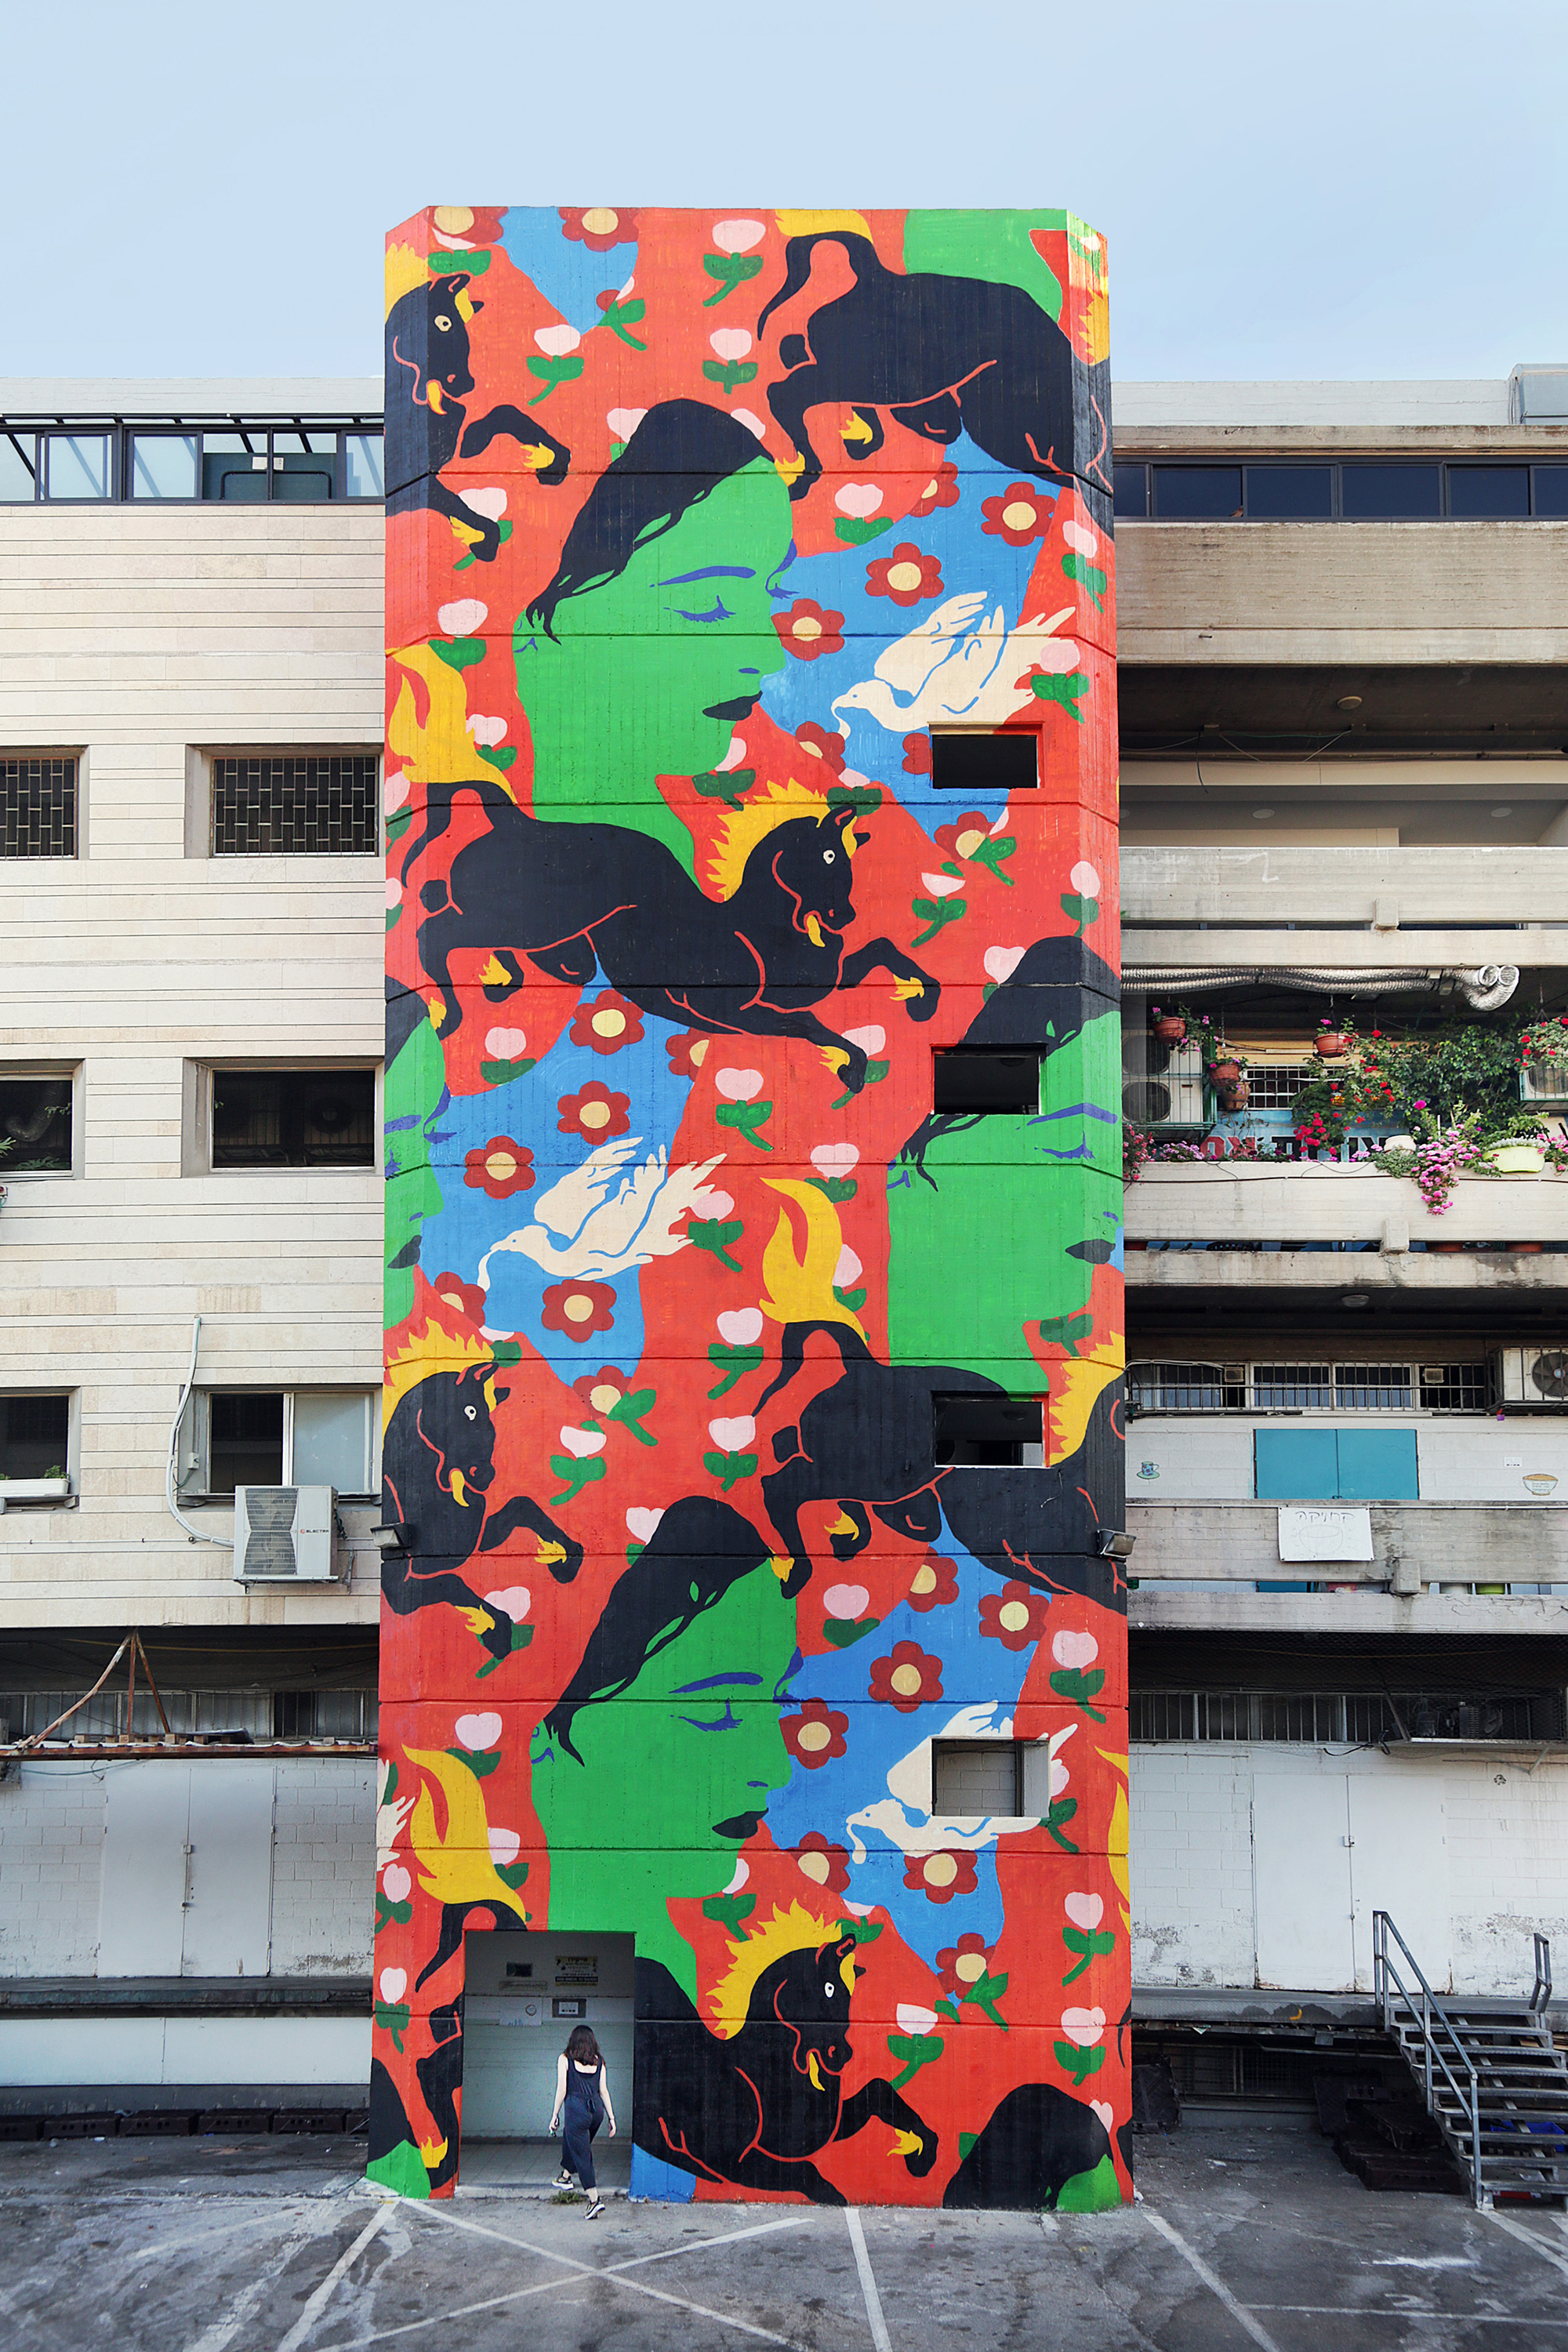 walls festival jerusalem broken fingaz israel graffiti street art tant unga deso ghostown